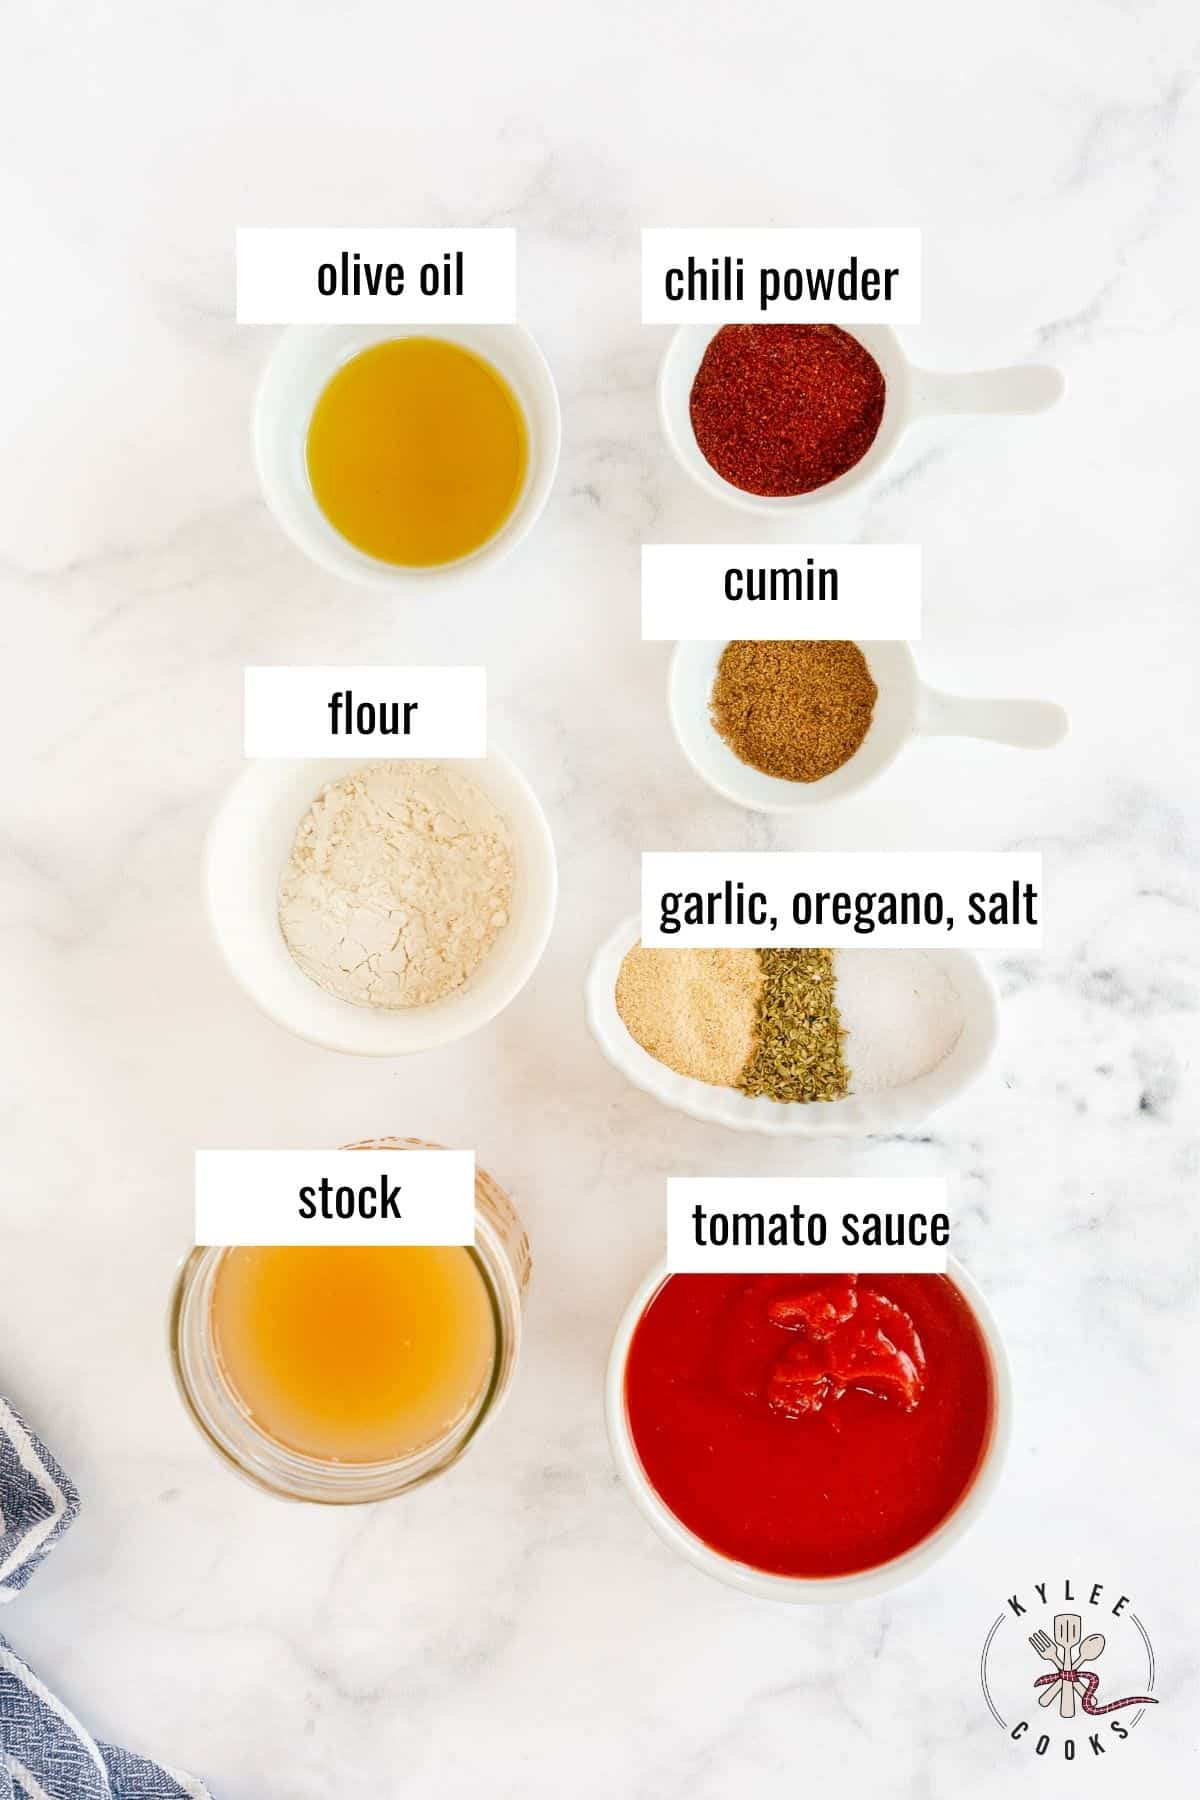 ingredients used in making enchilada sauce from scratch laid out and labeled